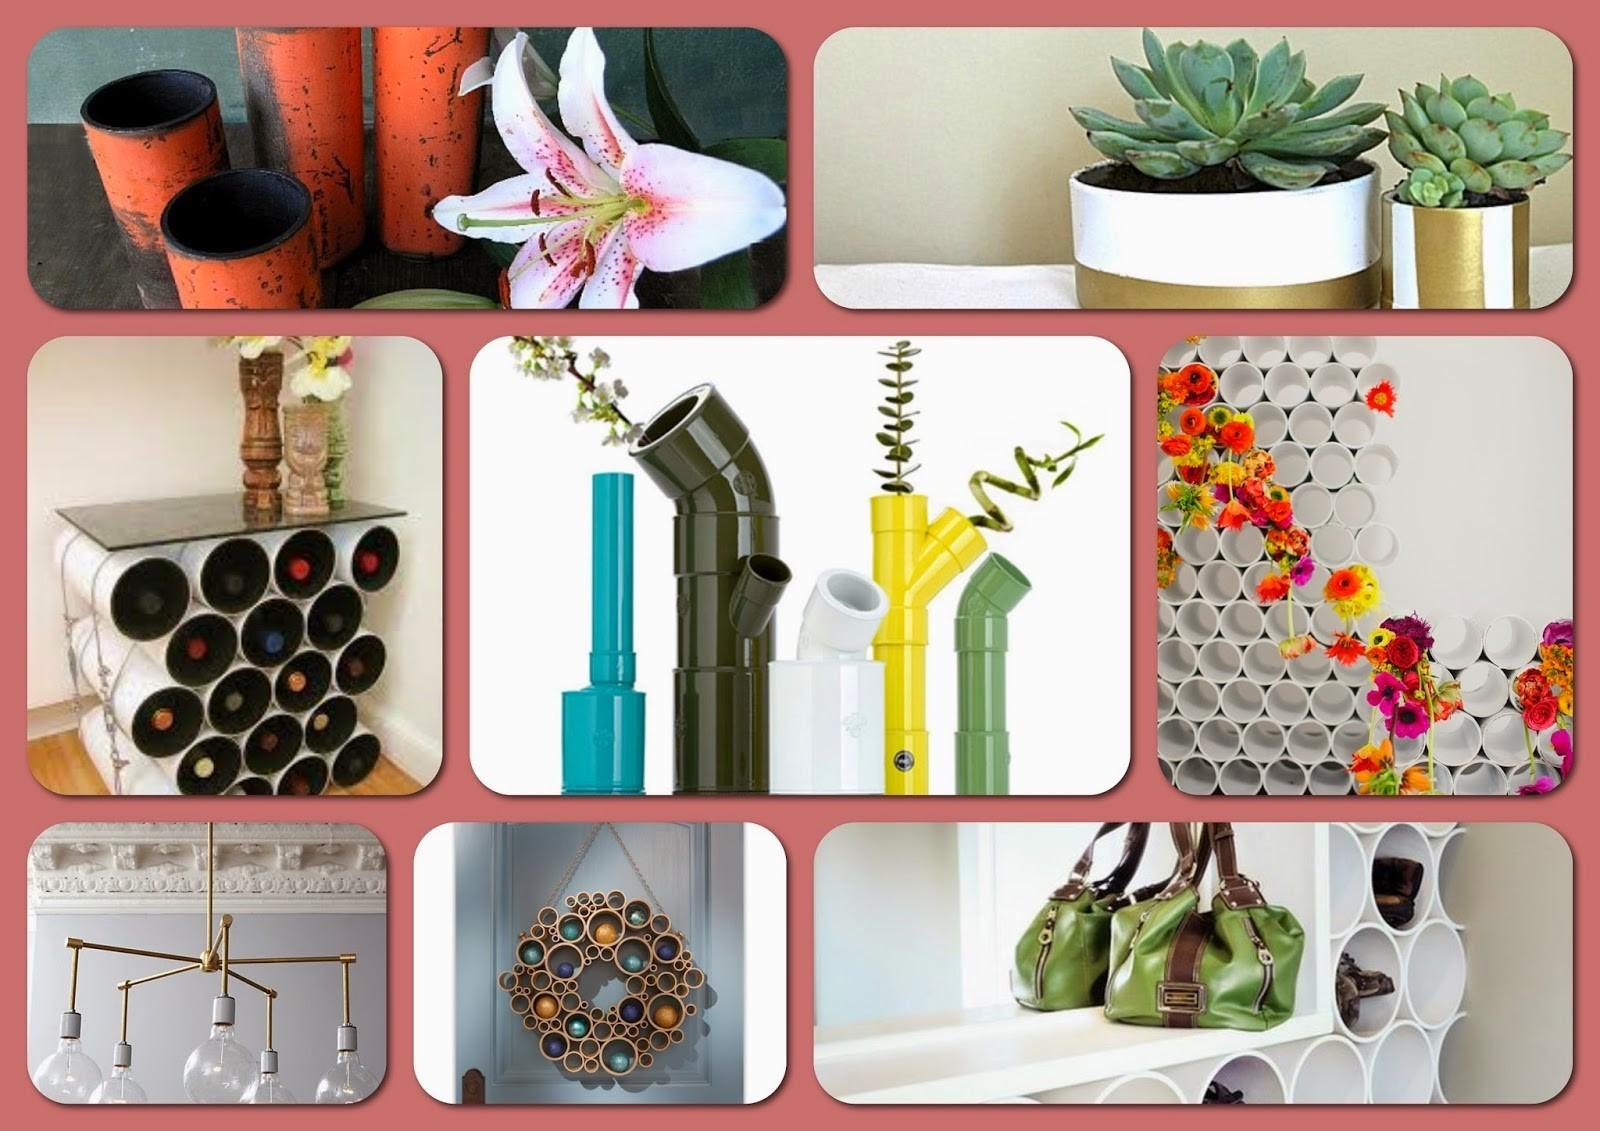 Diy Pipe Projects Your Home Garden Interior Design